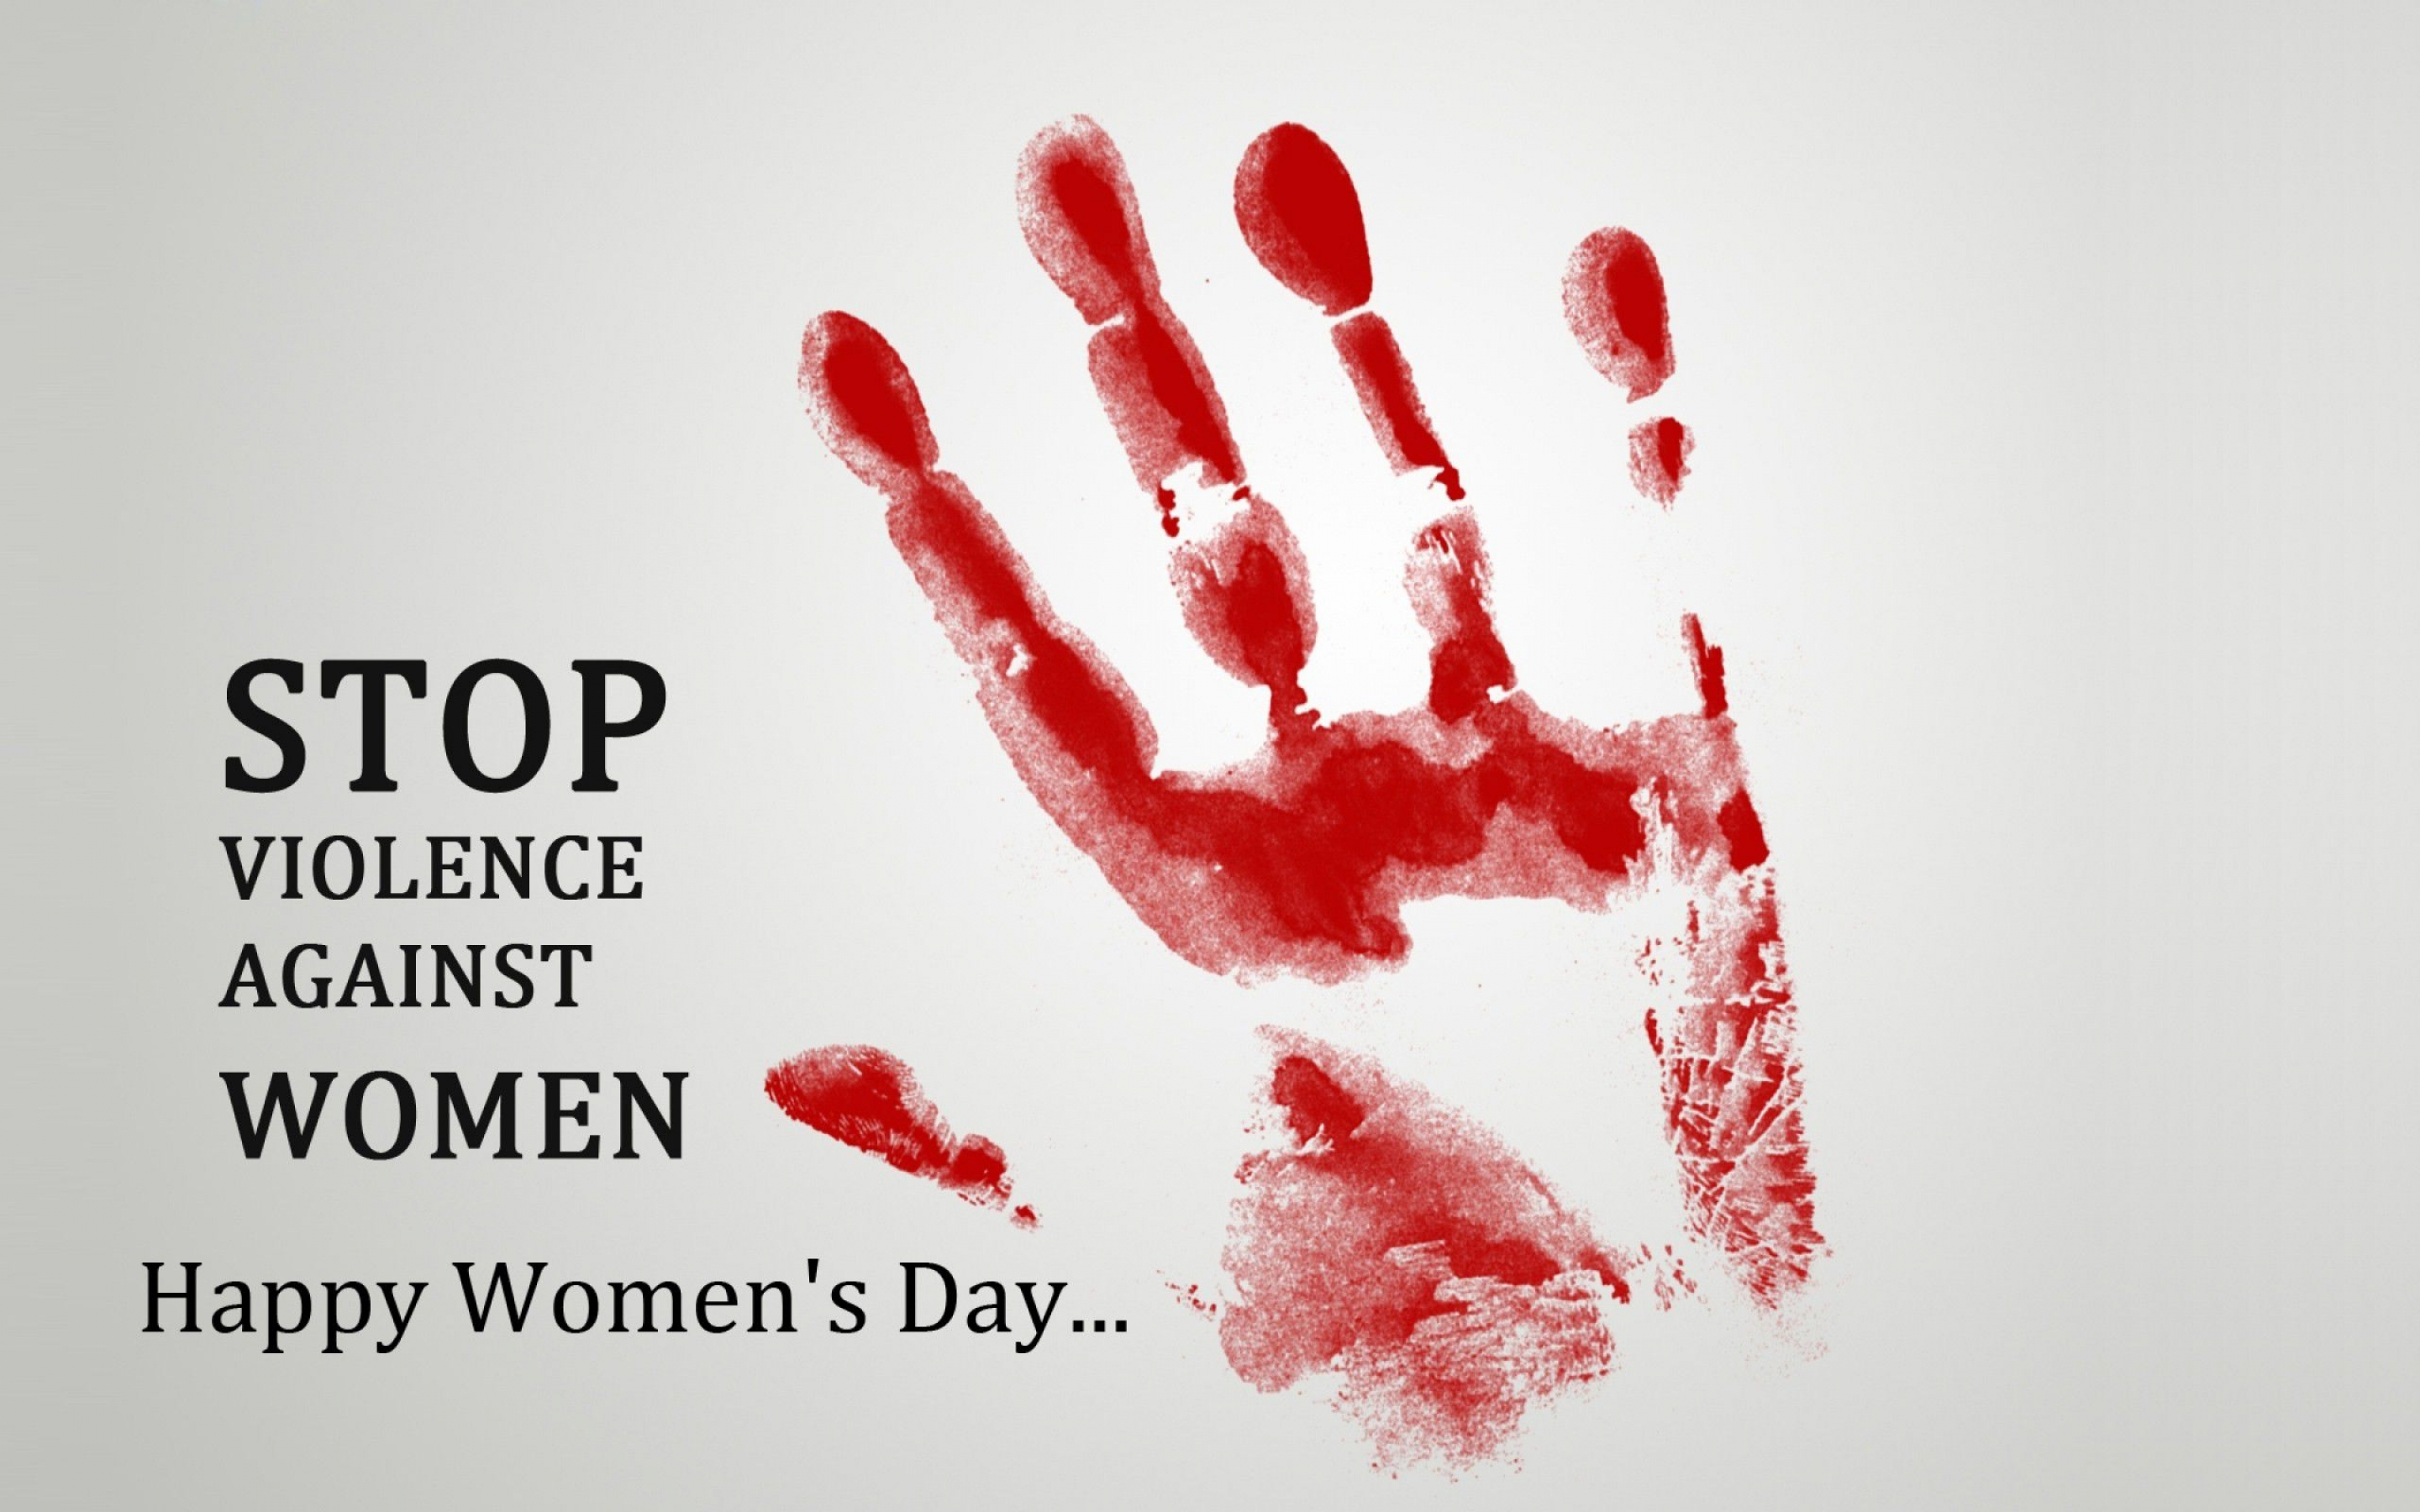 happy womens day stop violence against her quotes hd wallpaper